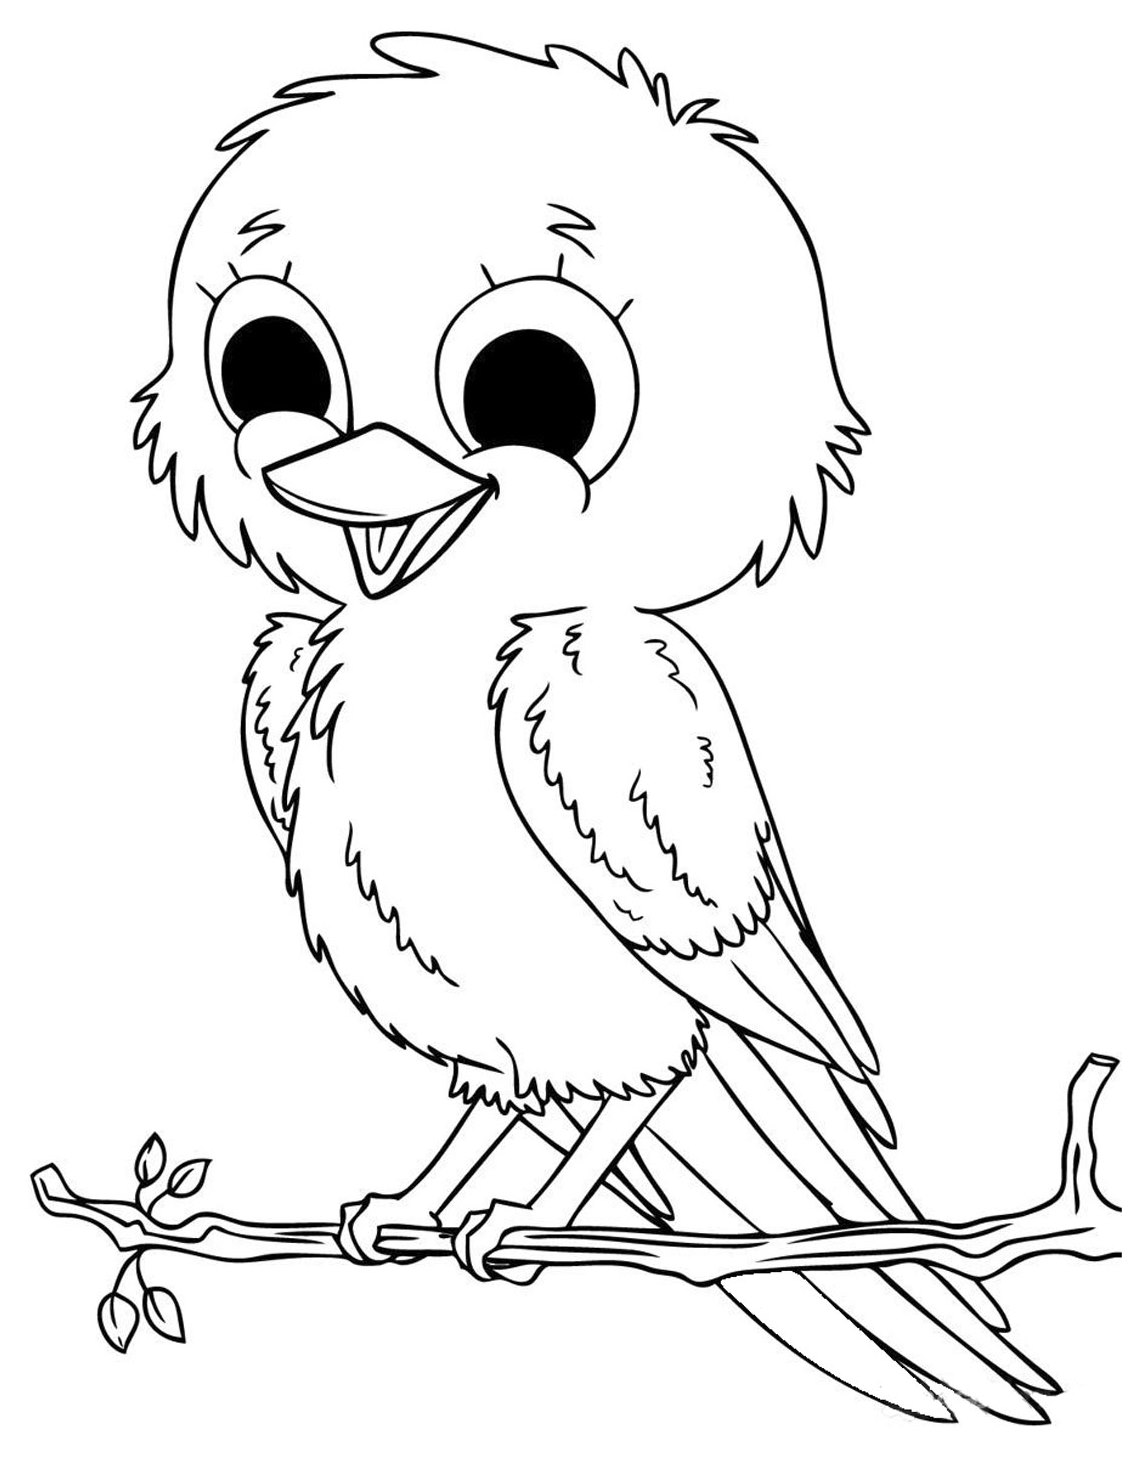 cute animals coloring pages coloring pages - Cute Animal Coloring Pages